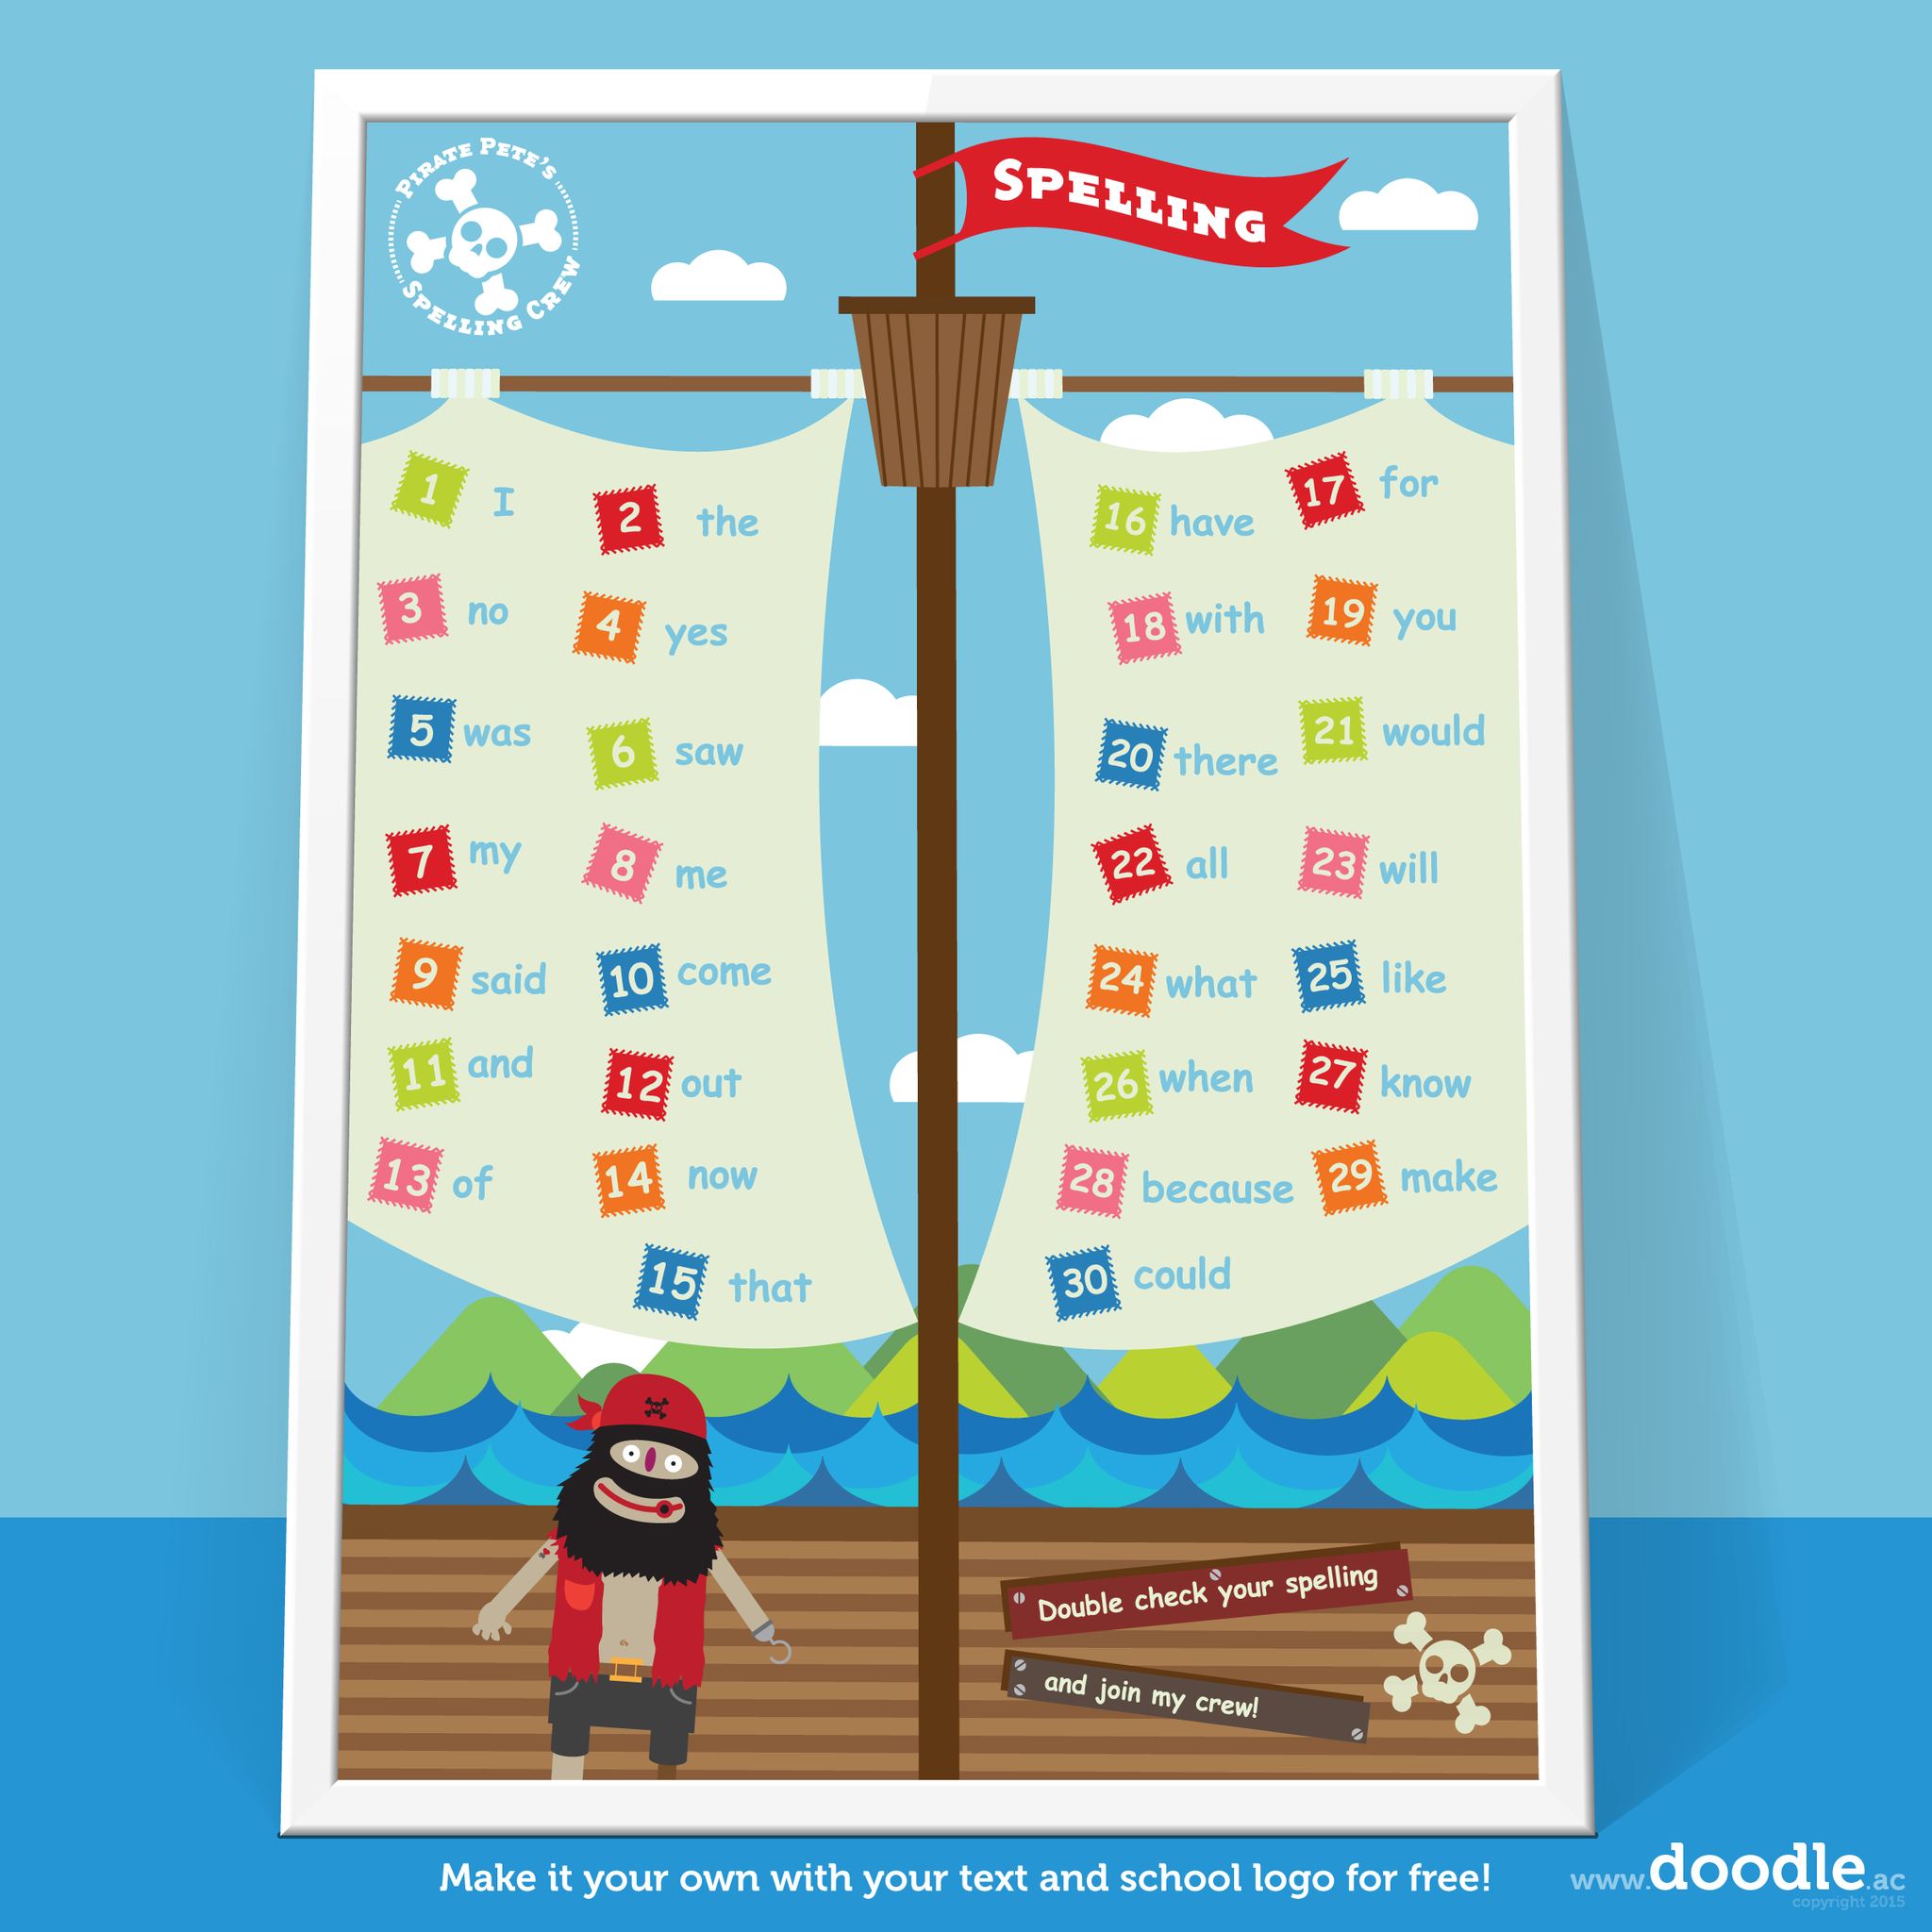 pirate pete spelling poster - doodle education